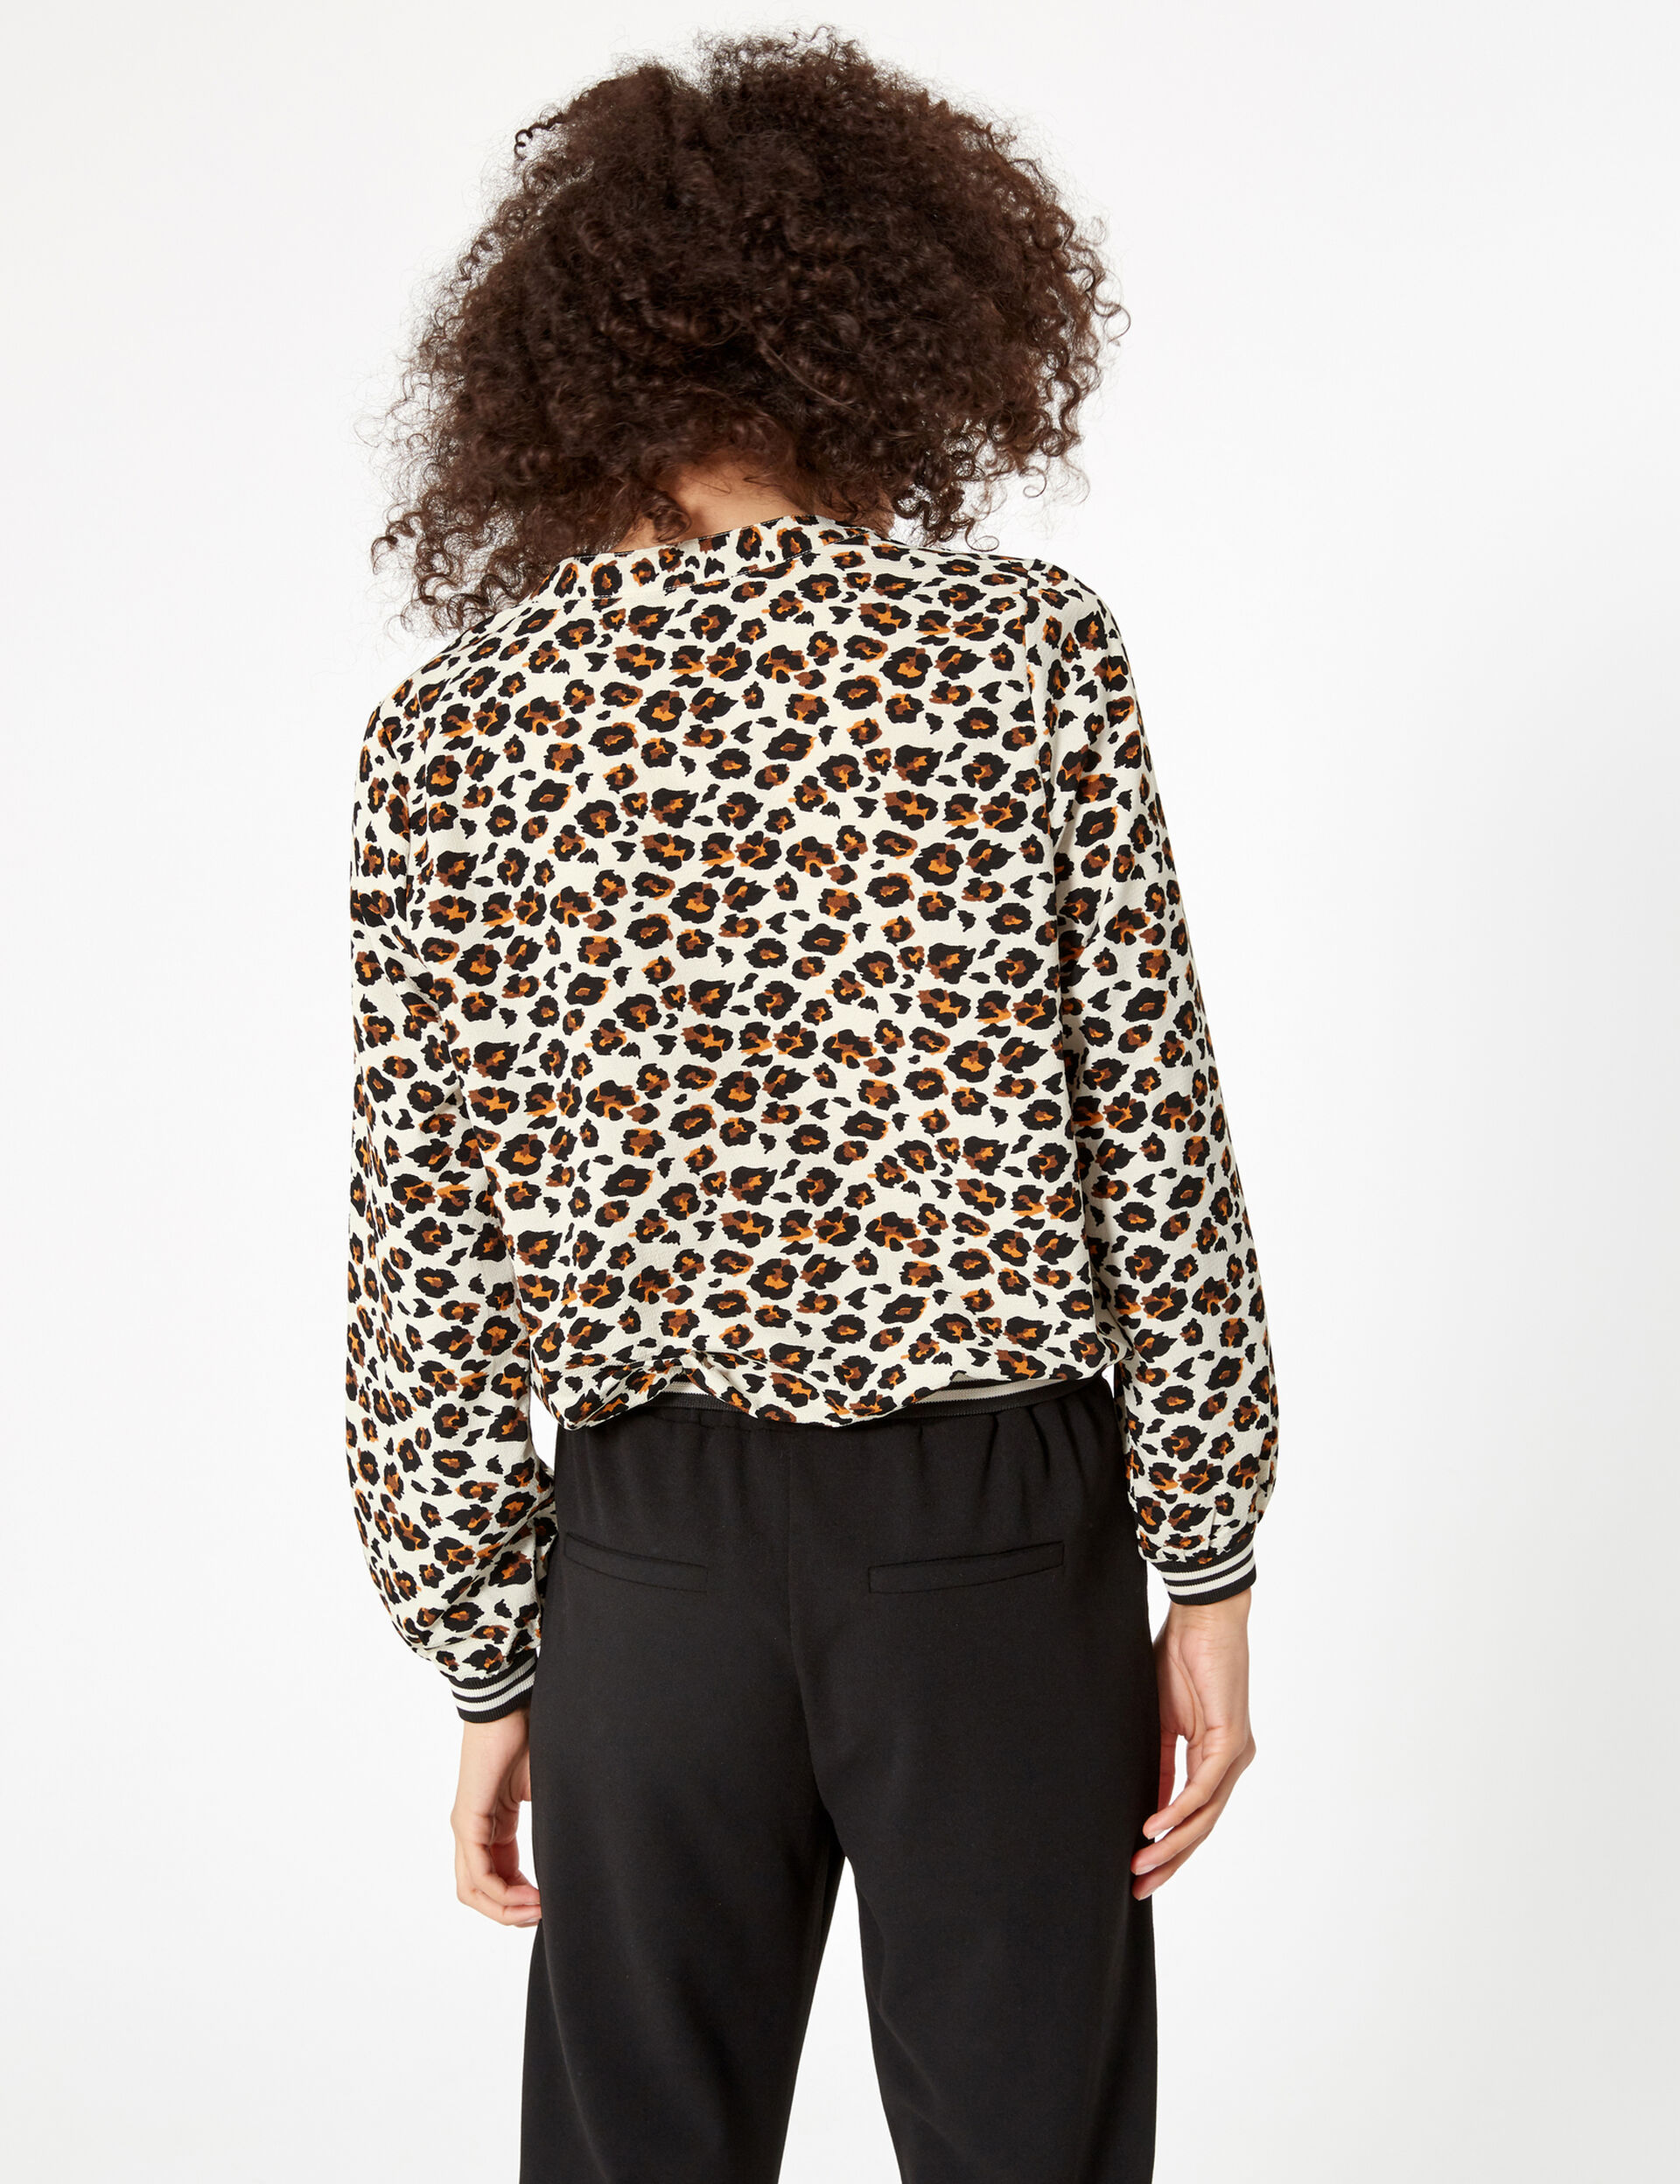 Camel, black and white leopard print blouse